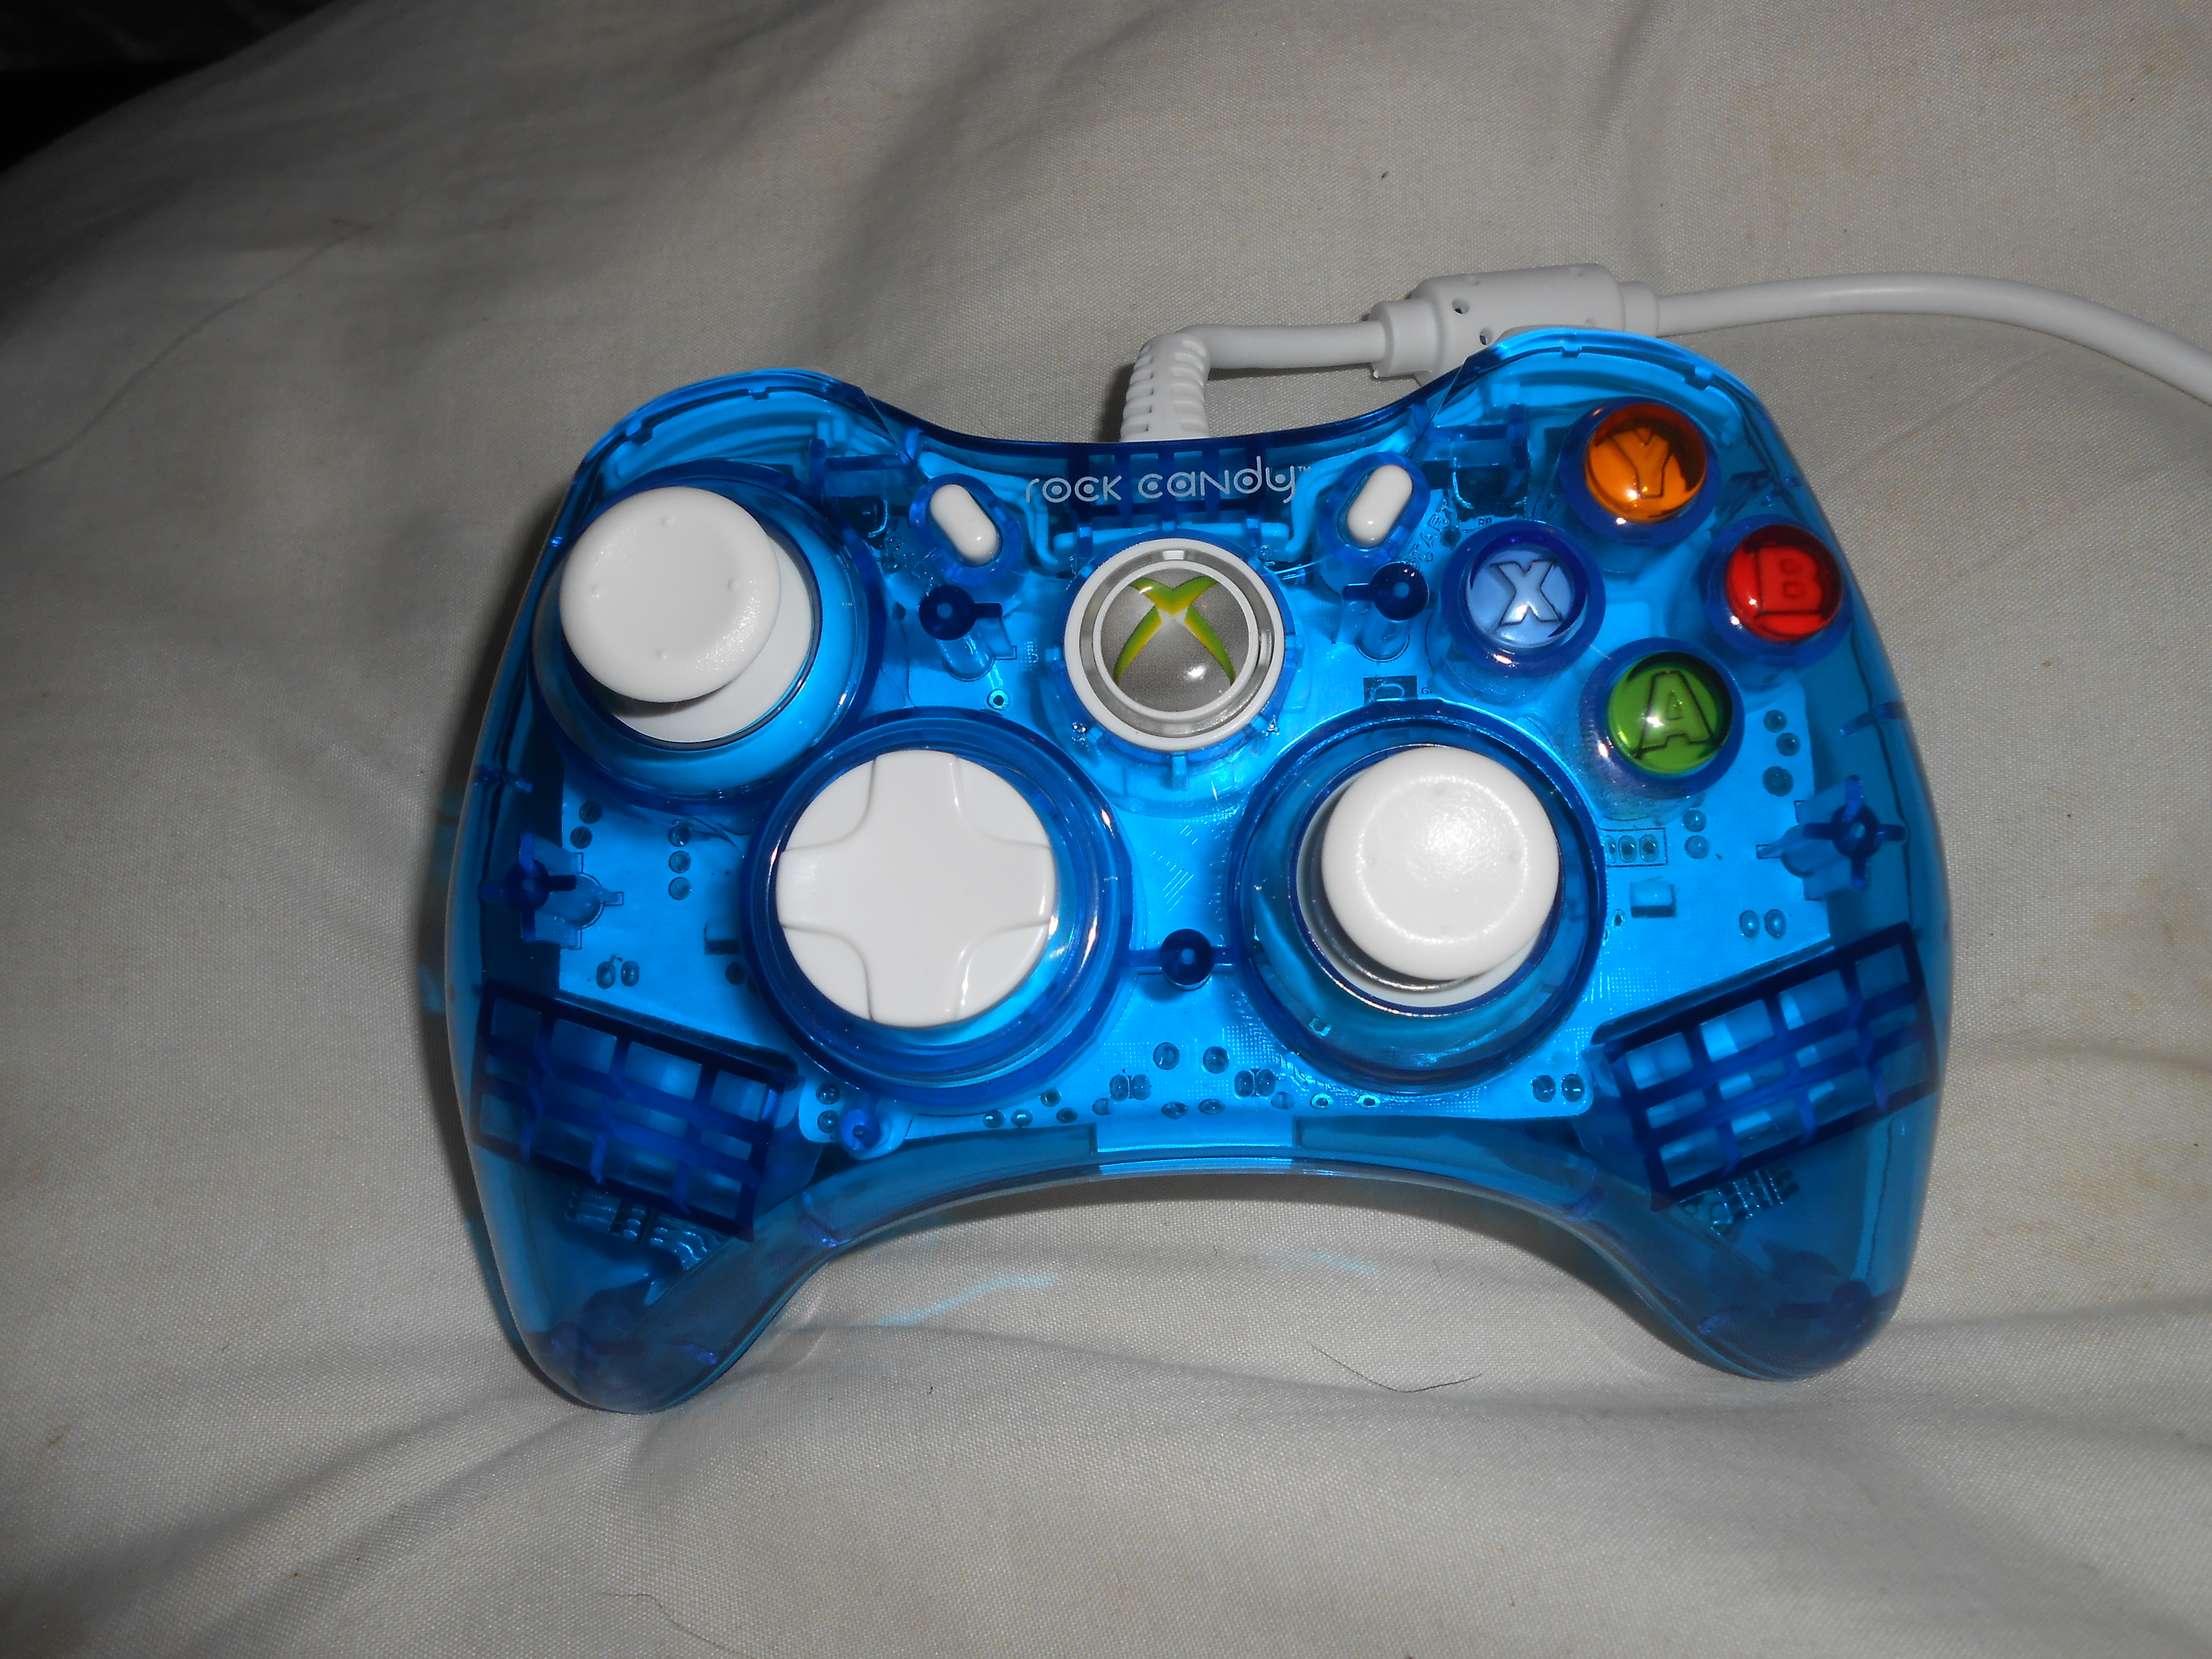 How to rapid fire mod a rock candy xbox 360 controller